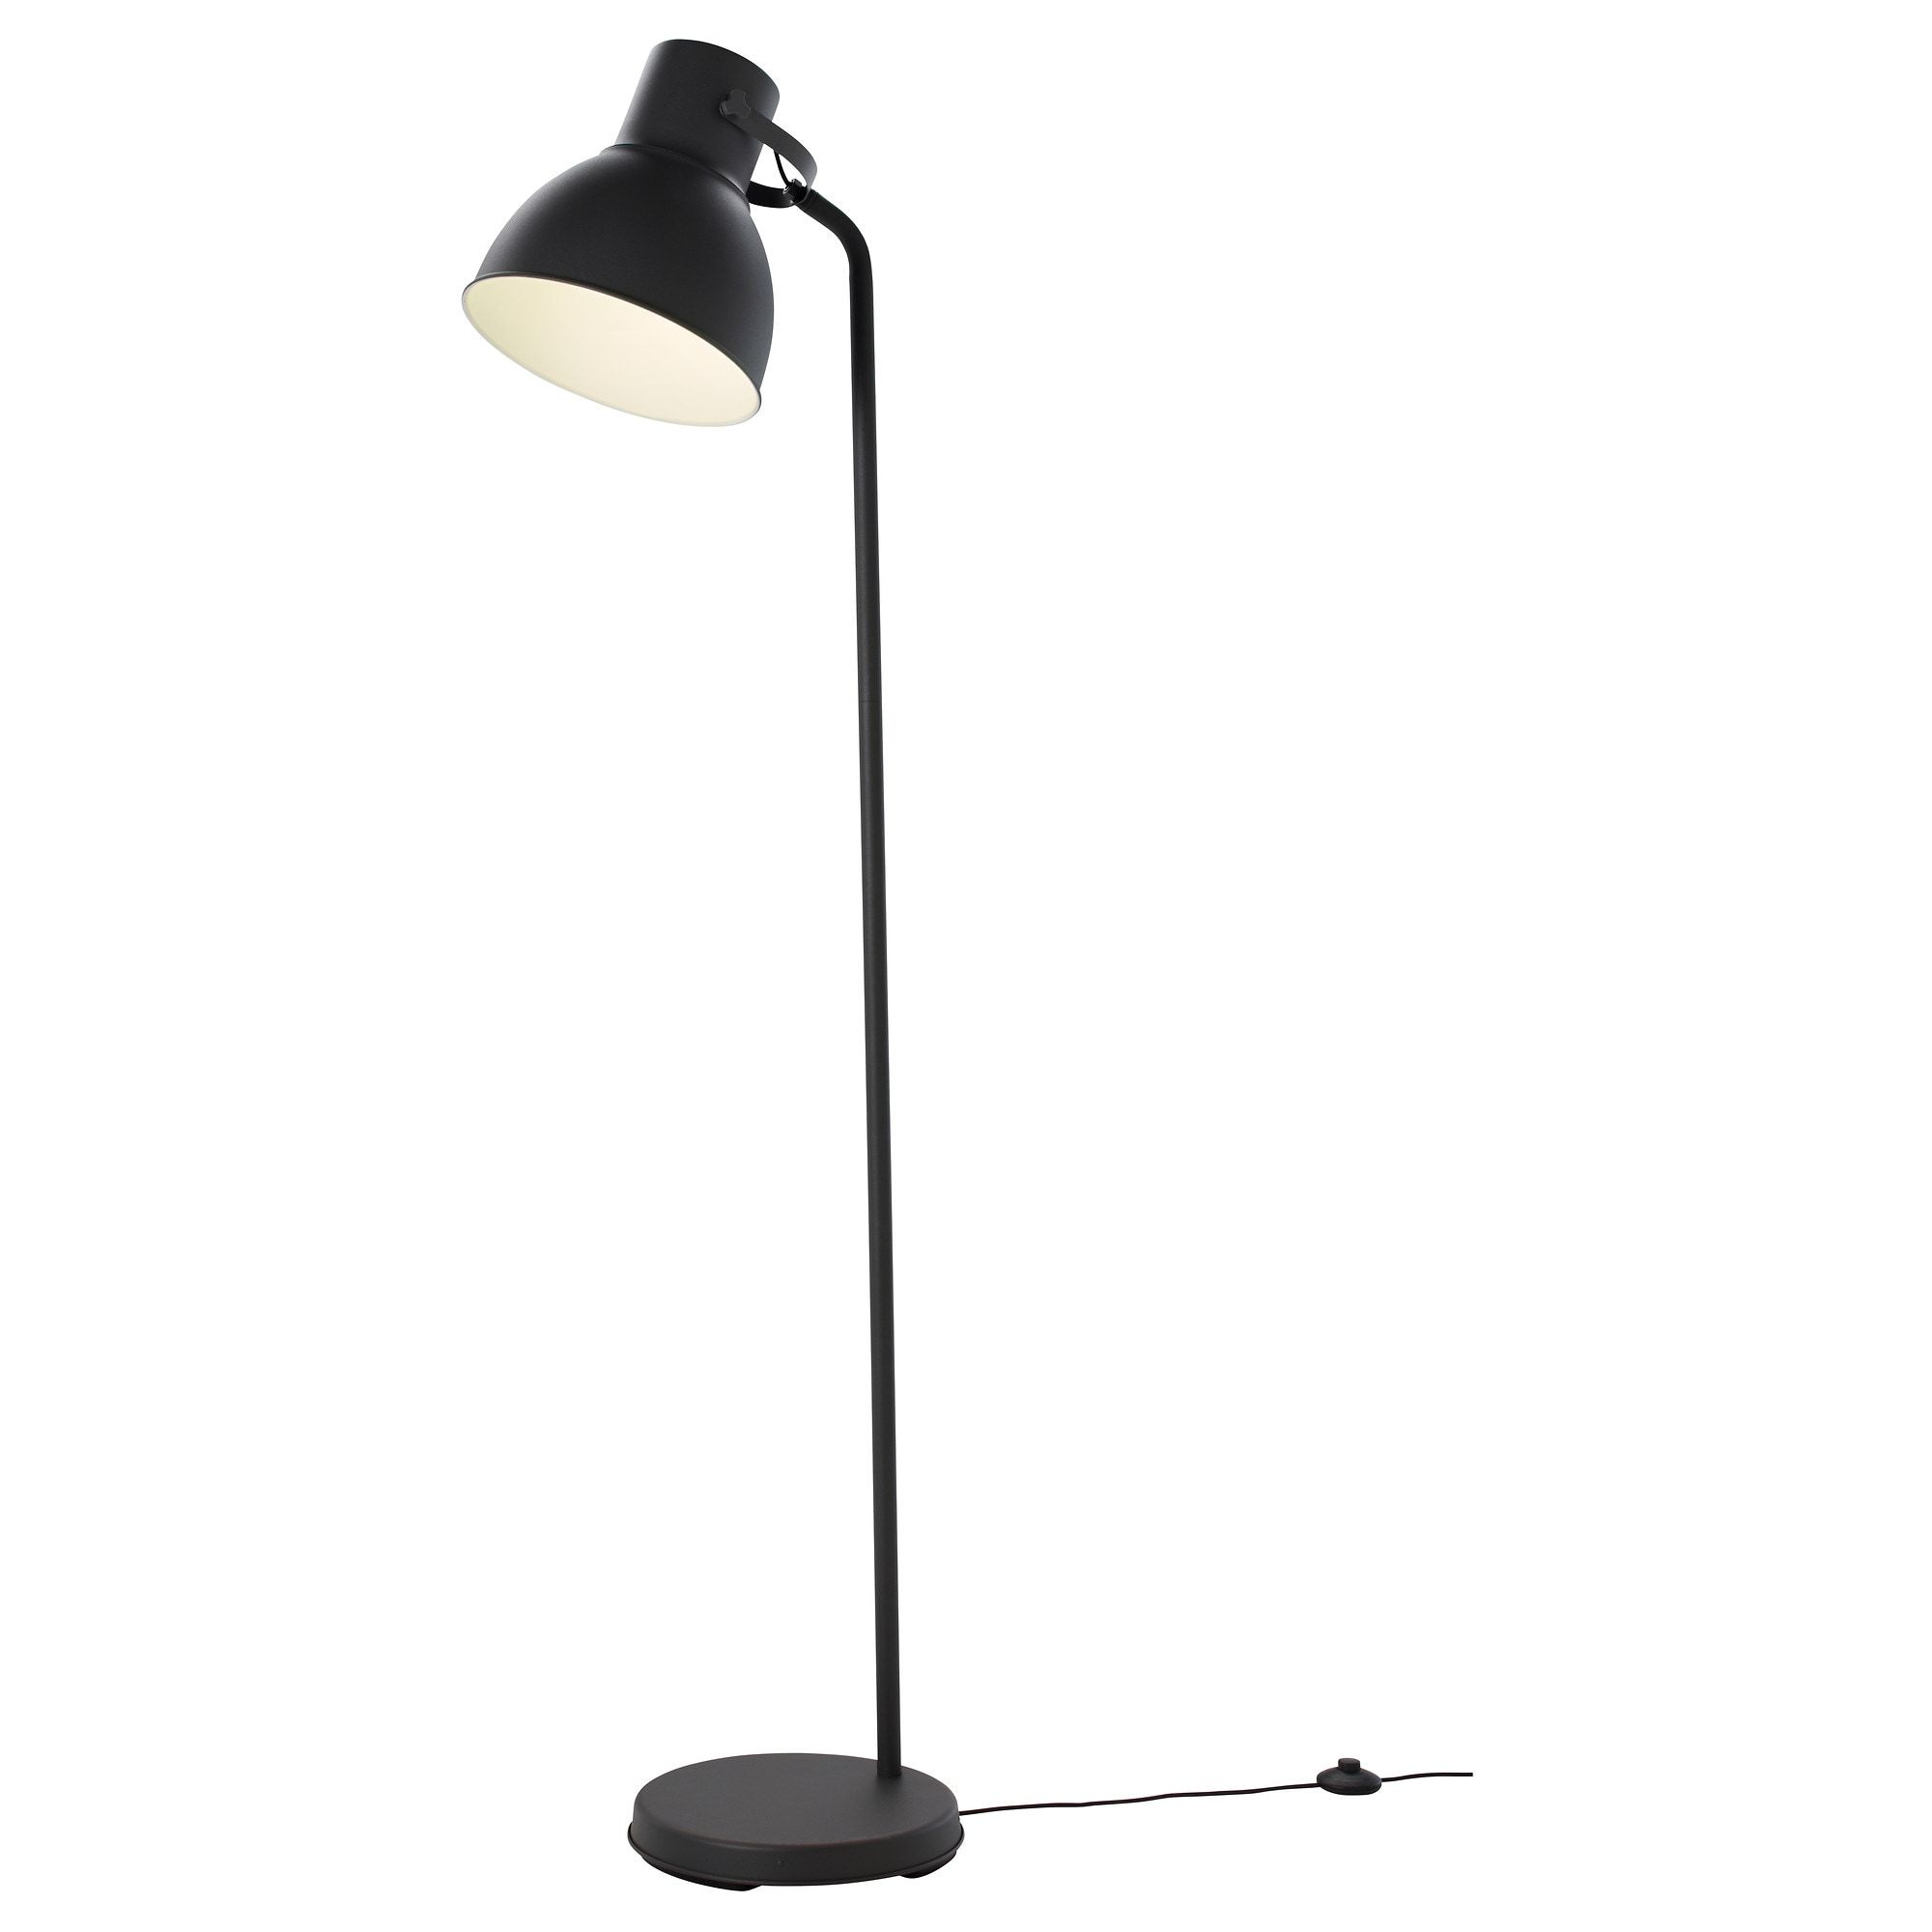 HEKTAR Floor lamp with LED bulb, dark gray - IKEA